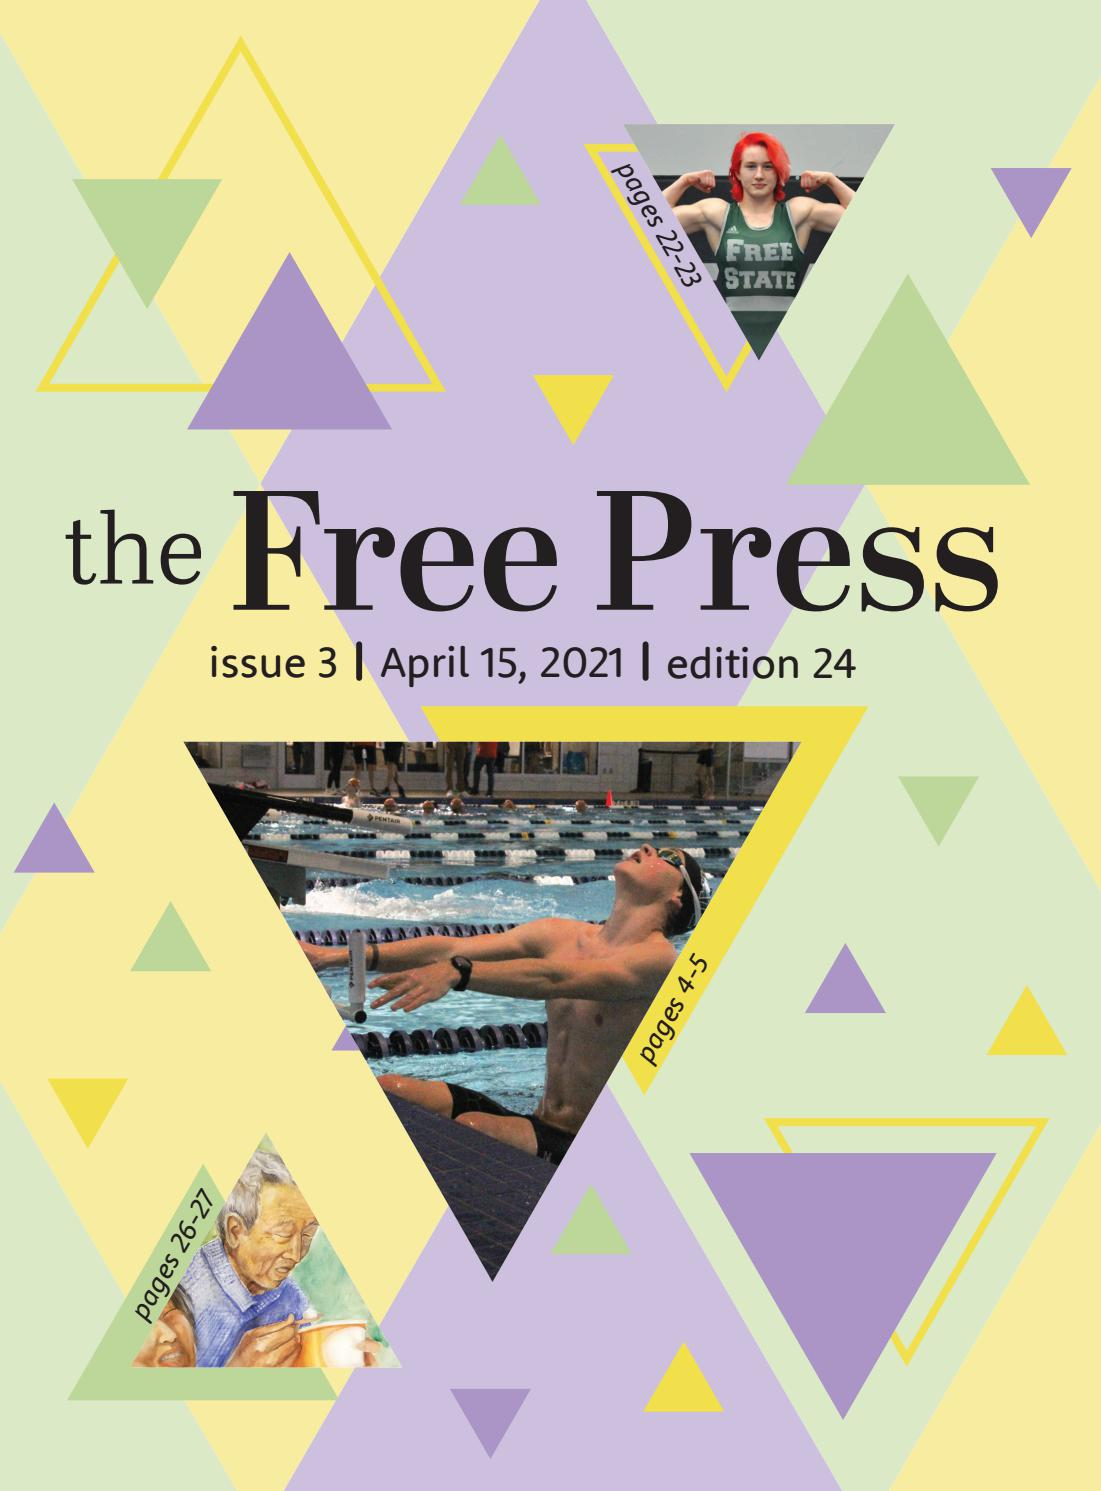 Free Press: Issue 3, Edition 24